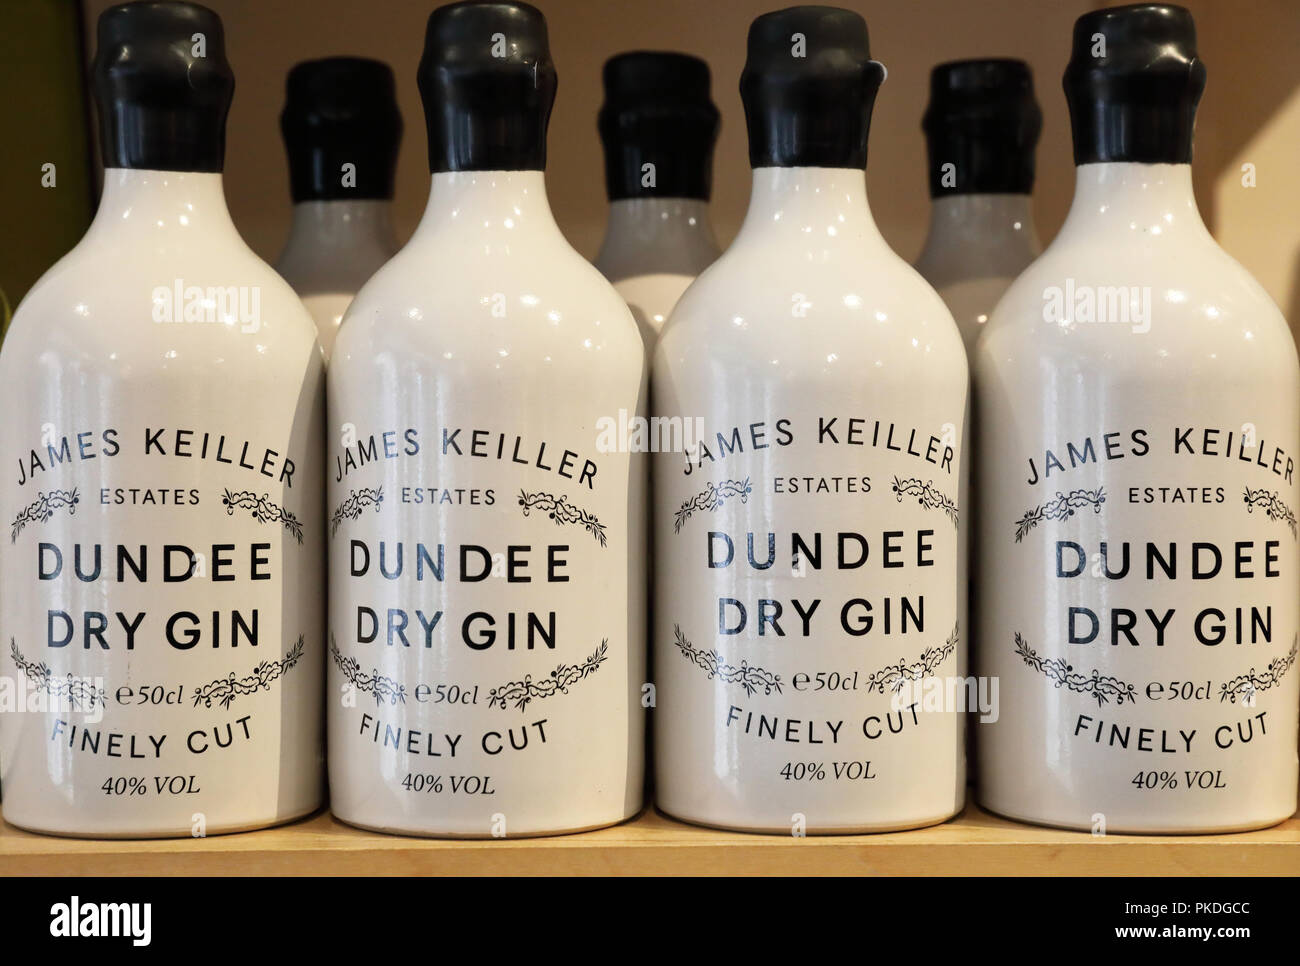 James Keiller estates Dundee Dry Gin for sale, in Scotland, UK - Stock Image